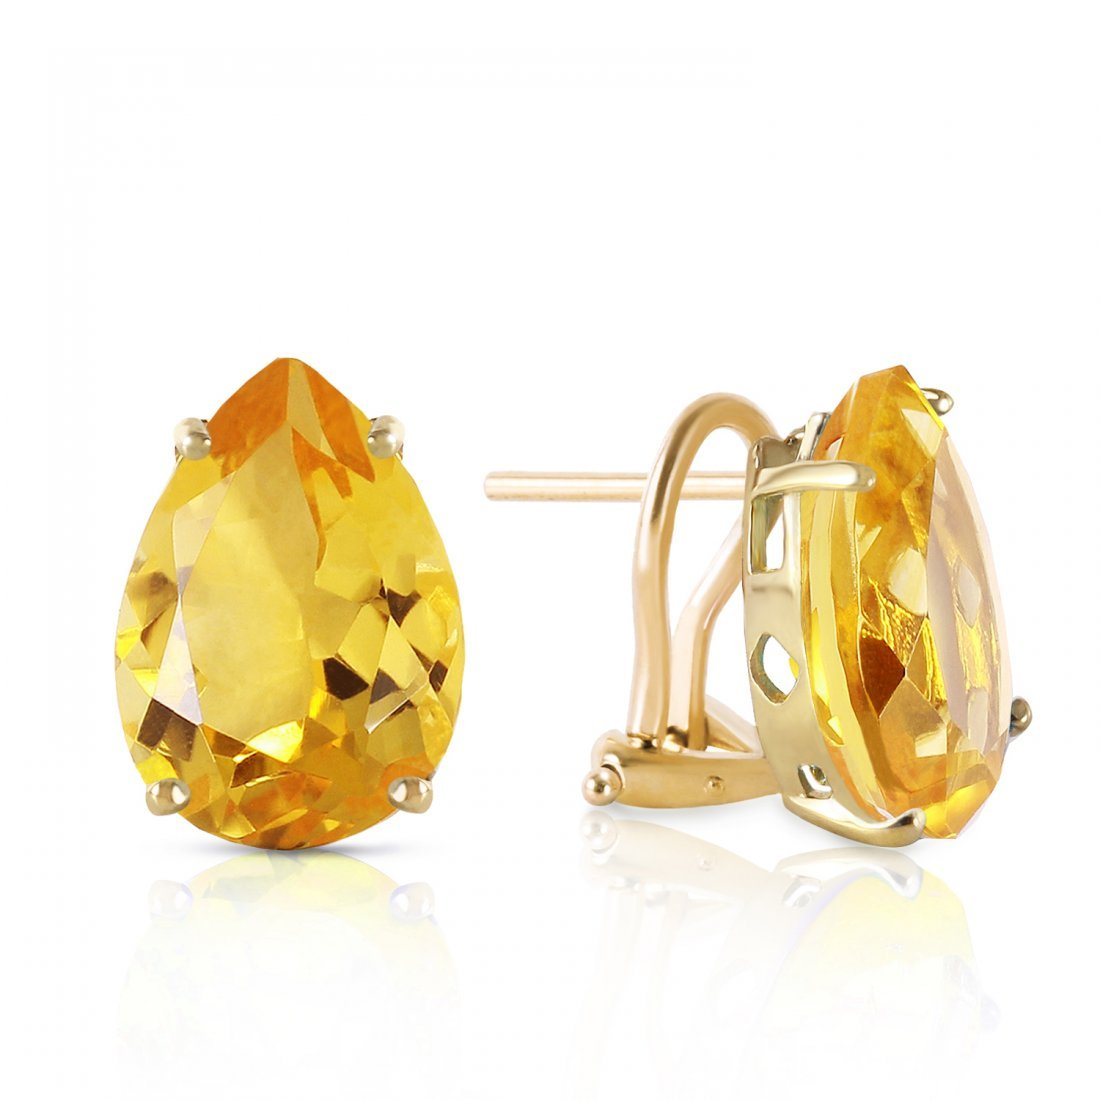 Genuine 10 ctw Citrine Earrings Jewelry 14KT Yellow